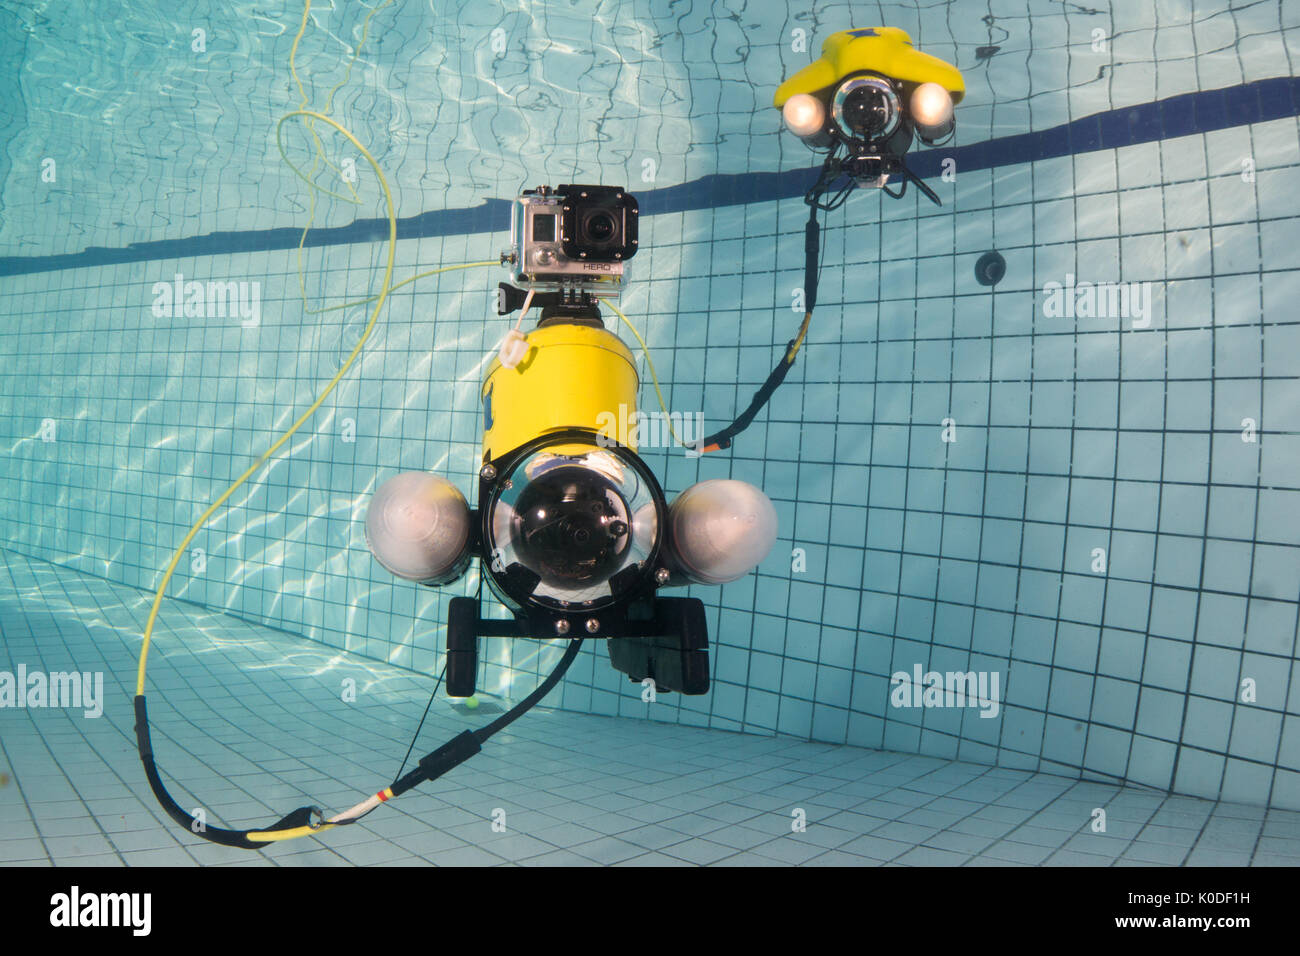 Rov Underwater Stock Photos Rov Underwater Stock Images Alamy